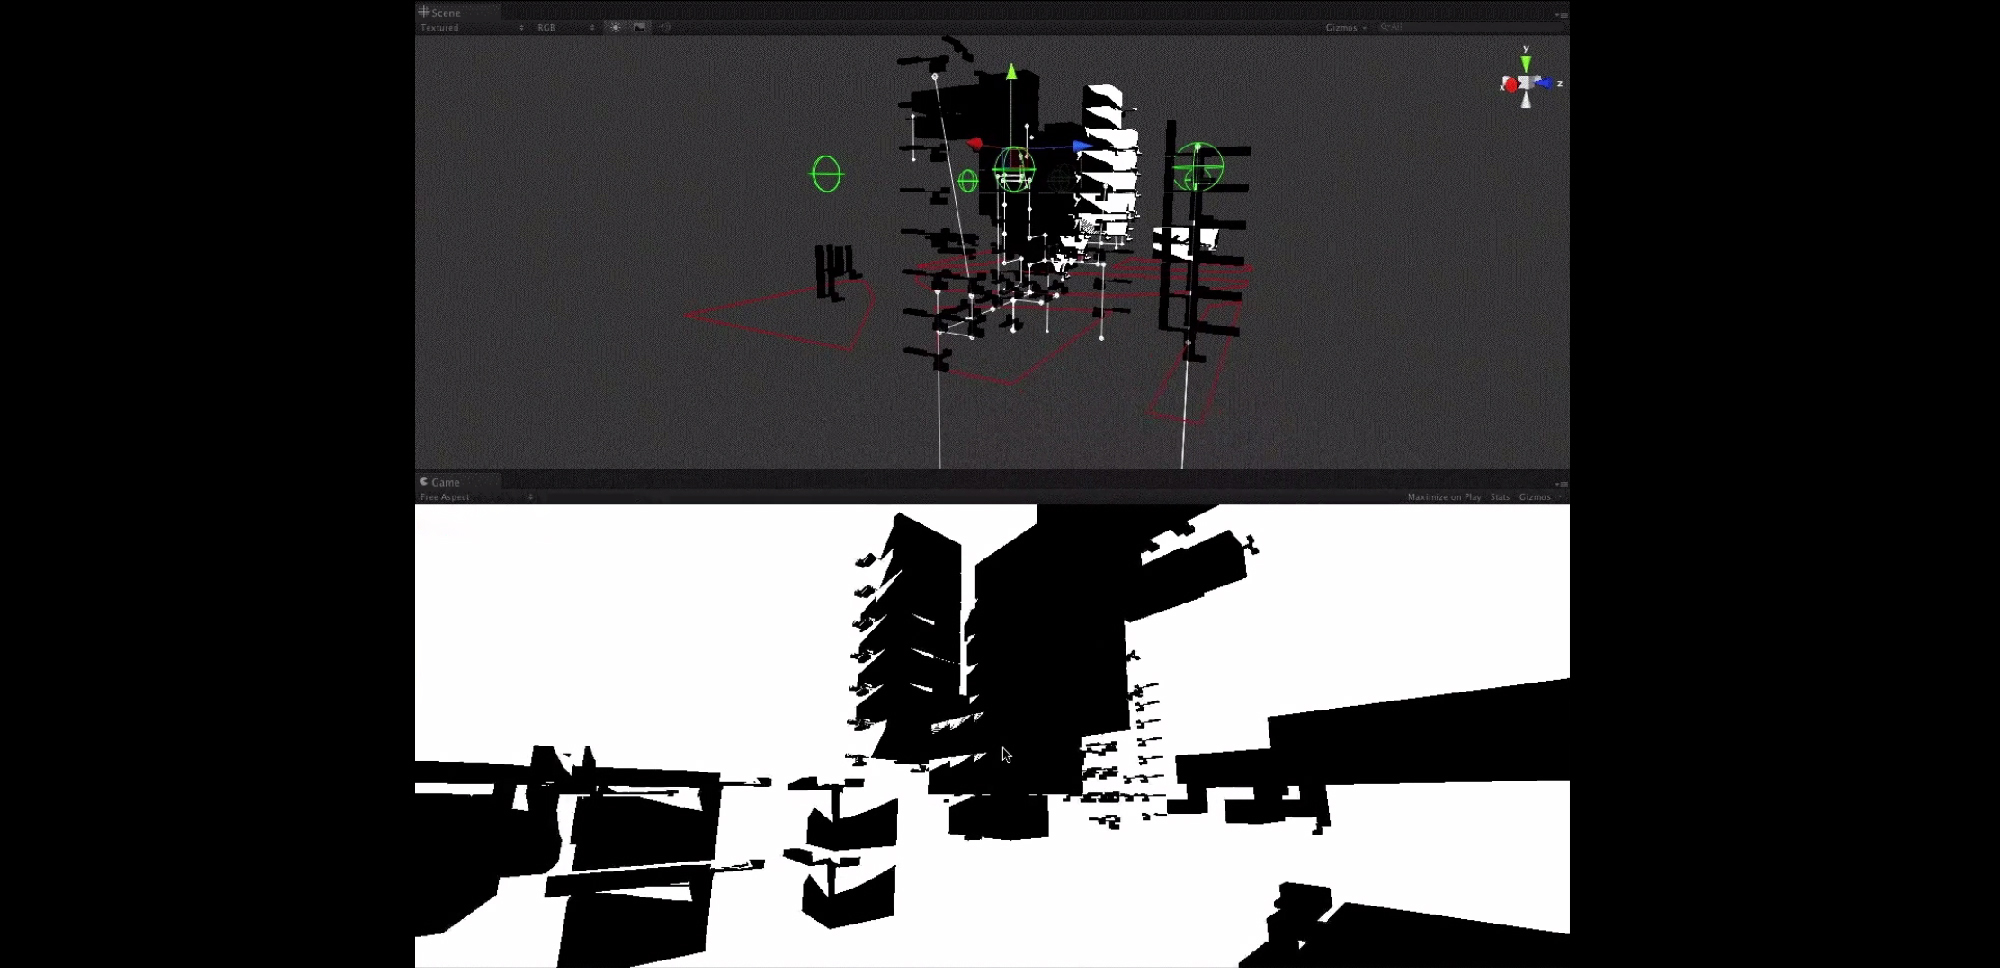 Representing an urban environment using audiographic objects